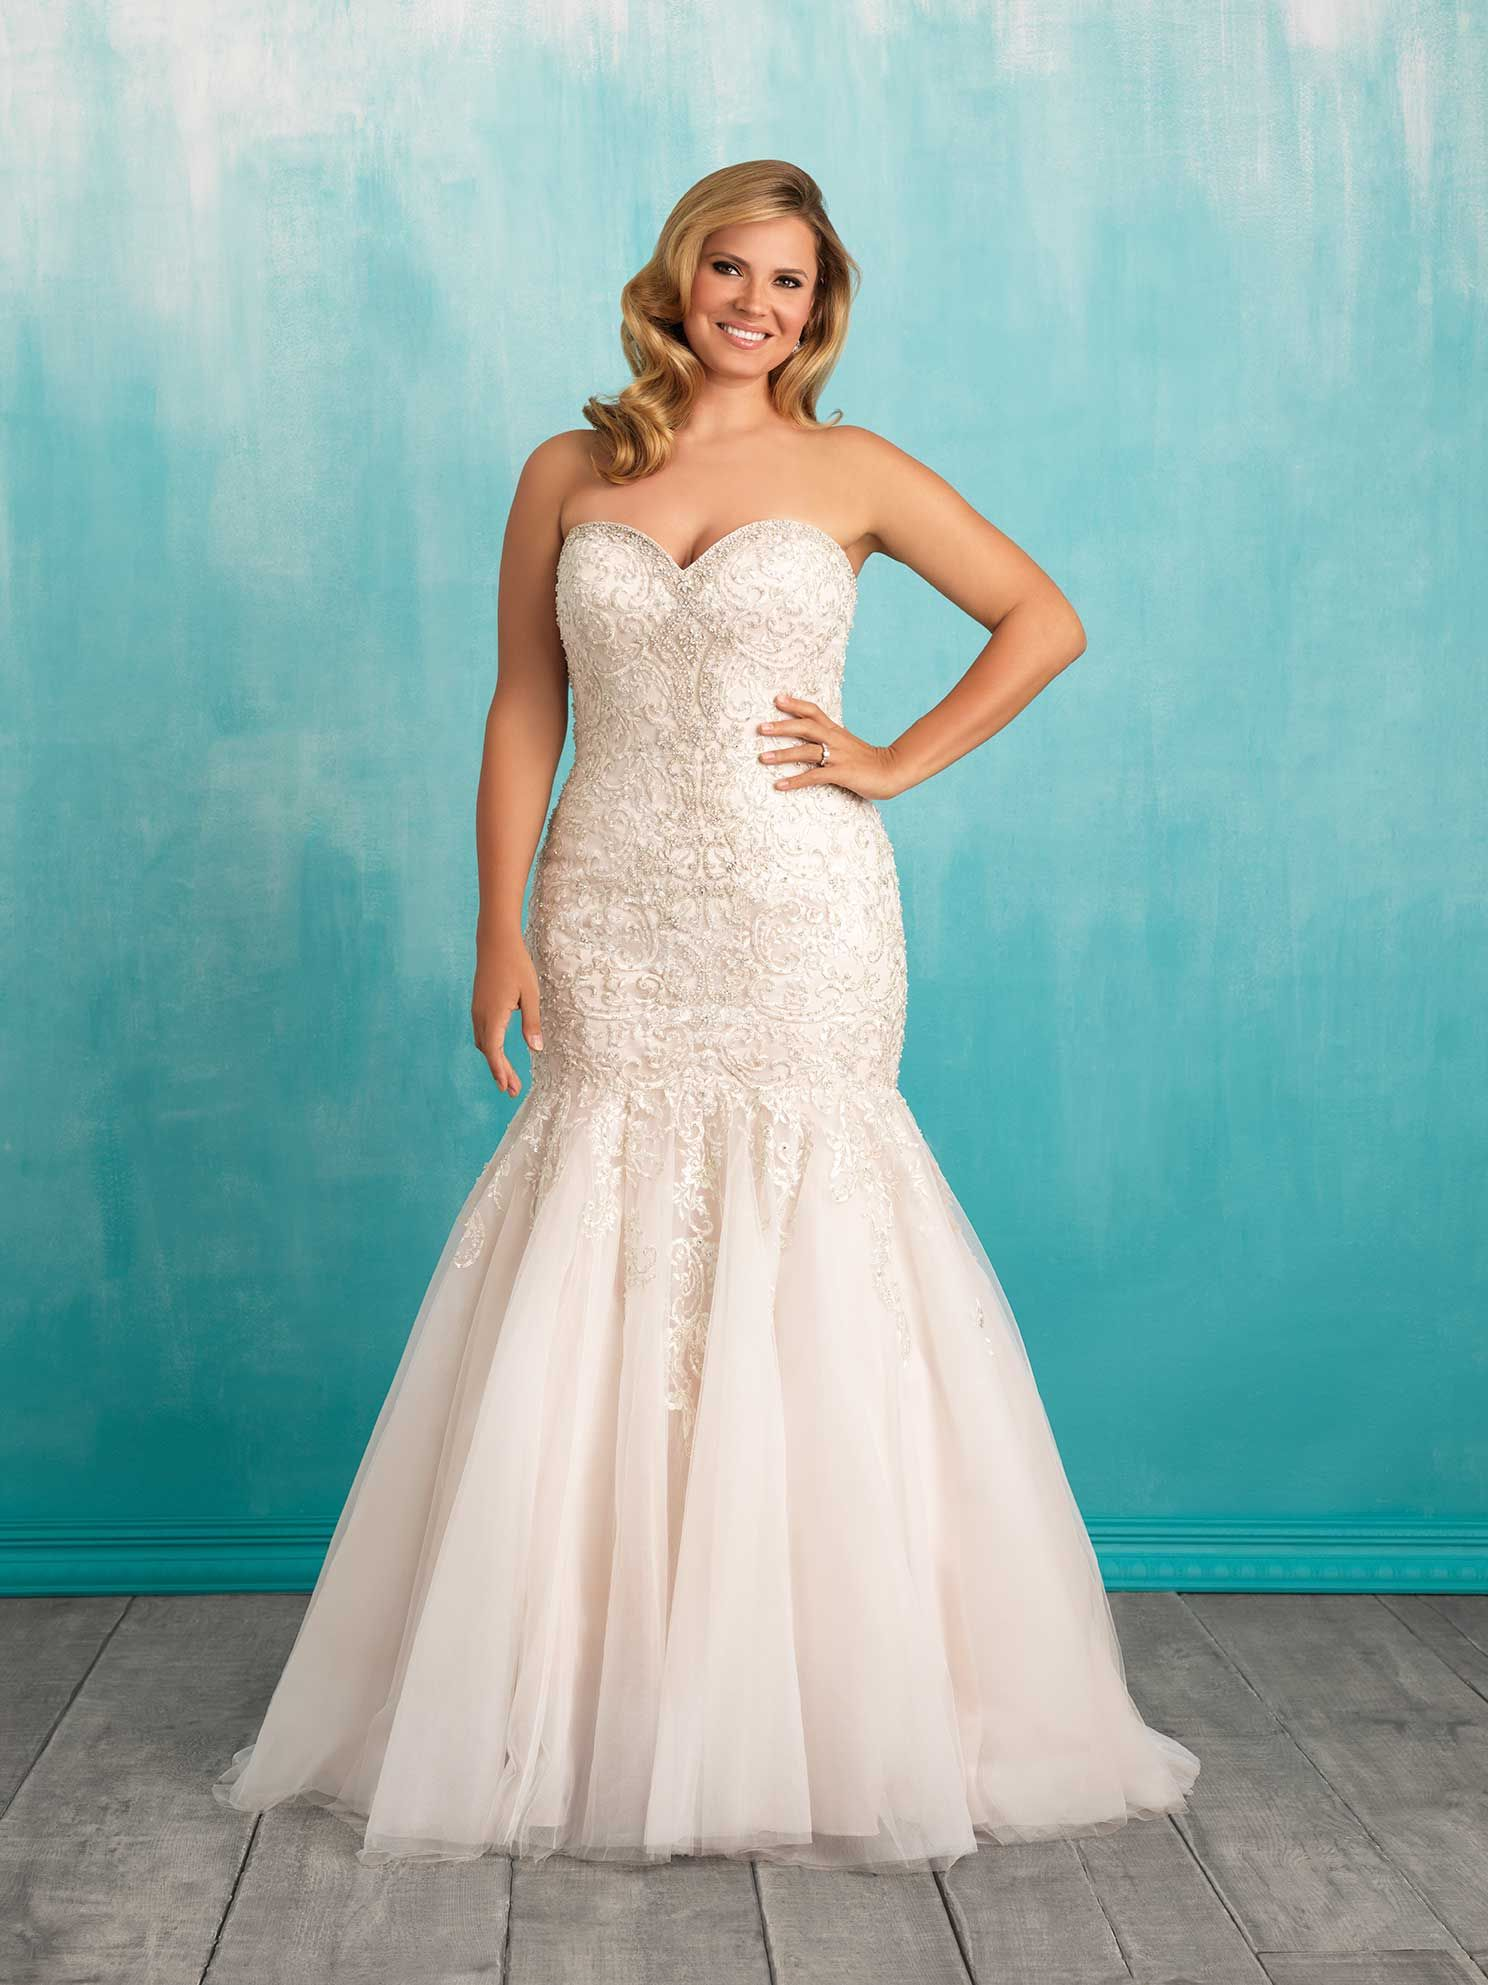 Related Item Image | Stuff to Buy | Pinterest | Allure bridal ...